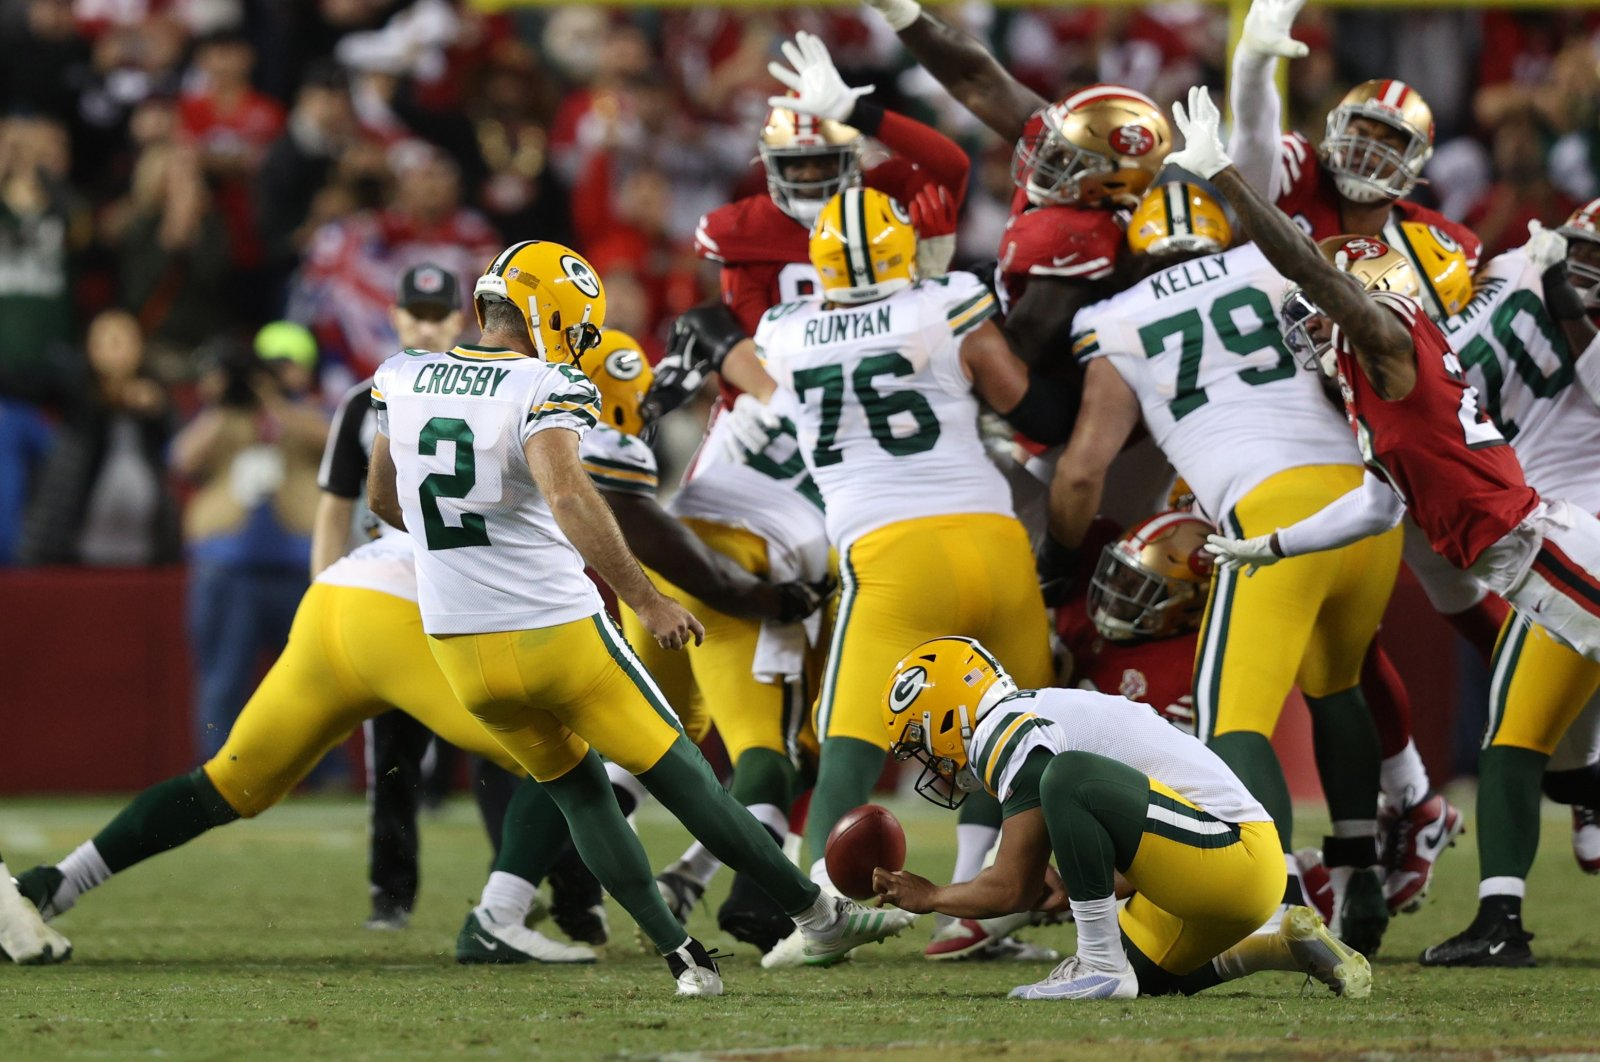 Mason Crosby (2) of the Green Bay Packers kicks the game-winning field goal against the San Francisco 49ers in the game at Levi's Stadium, Santa Clara, California, U.S., Sept. 26, 2021. (AFP Photo)